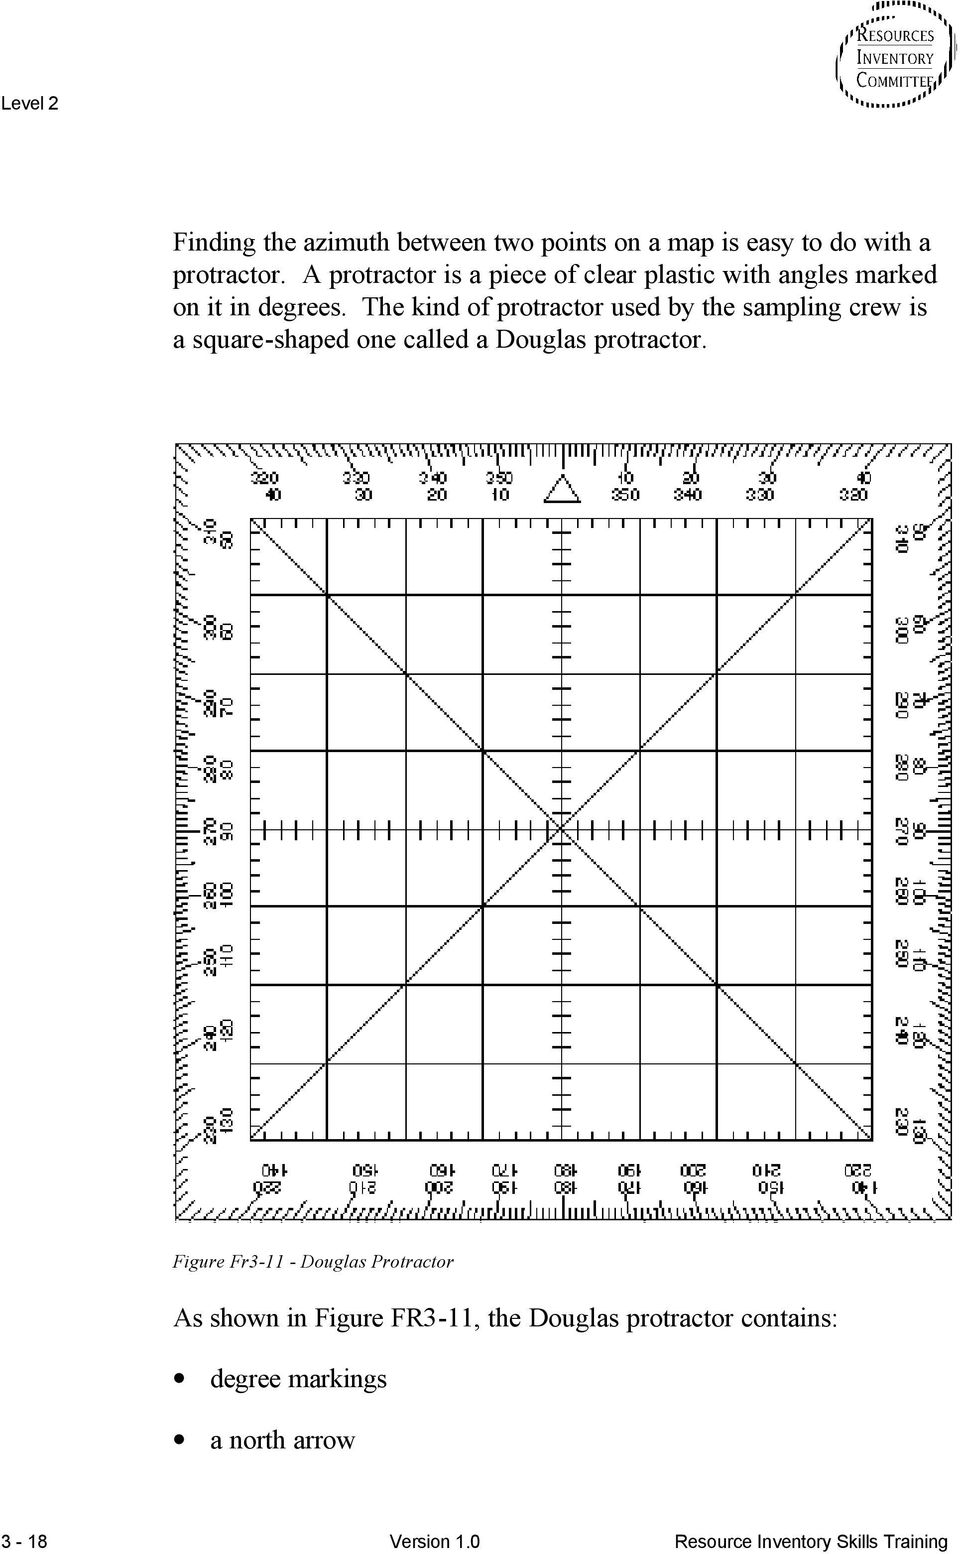 The kind of protractor used by the sampling crew is a square-shaped one called a Douglas protractor.